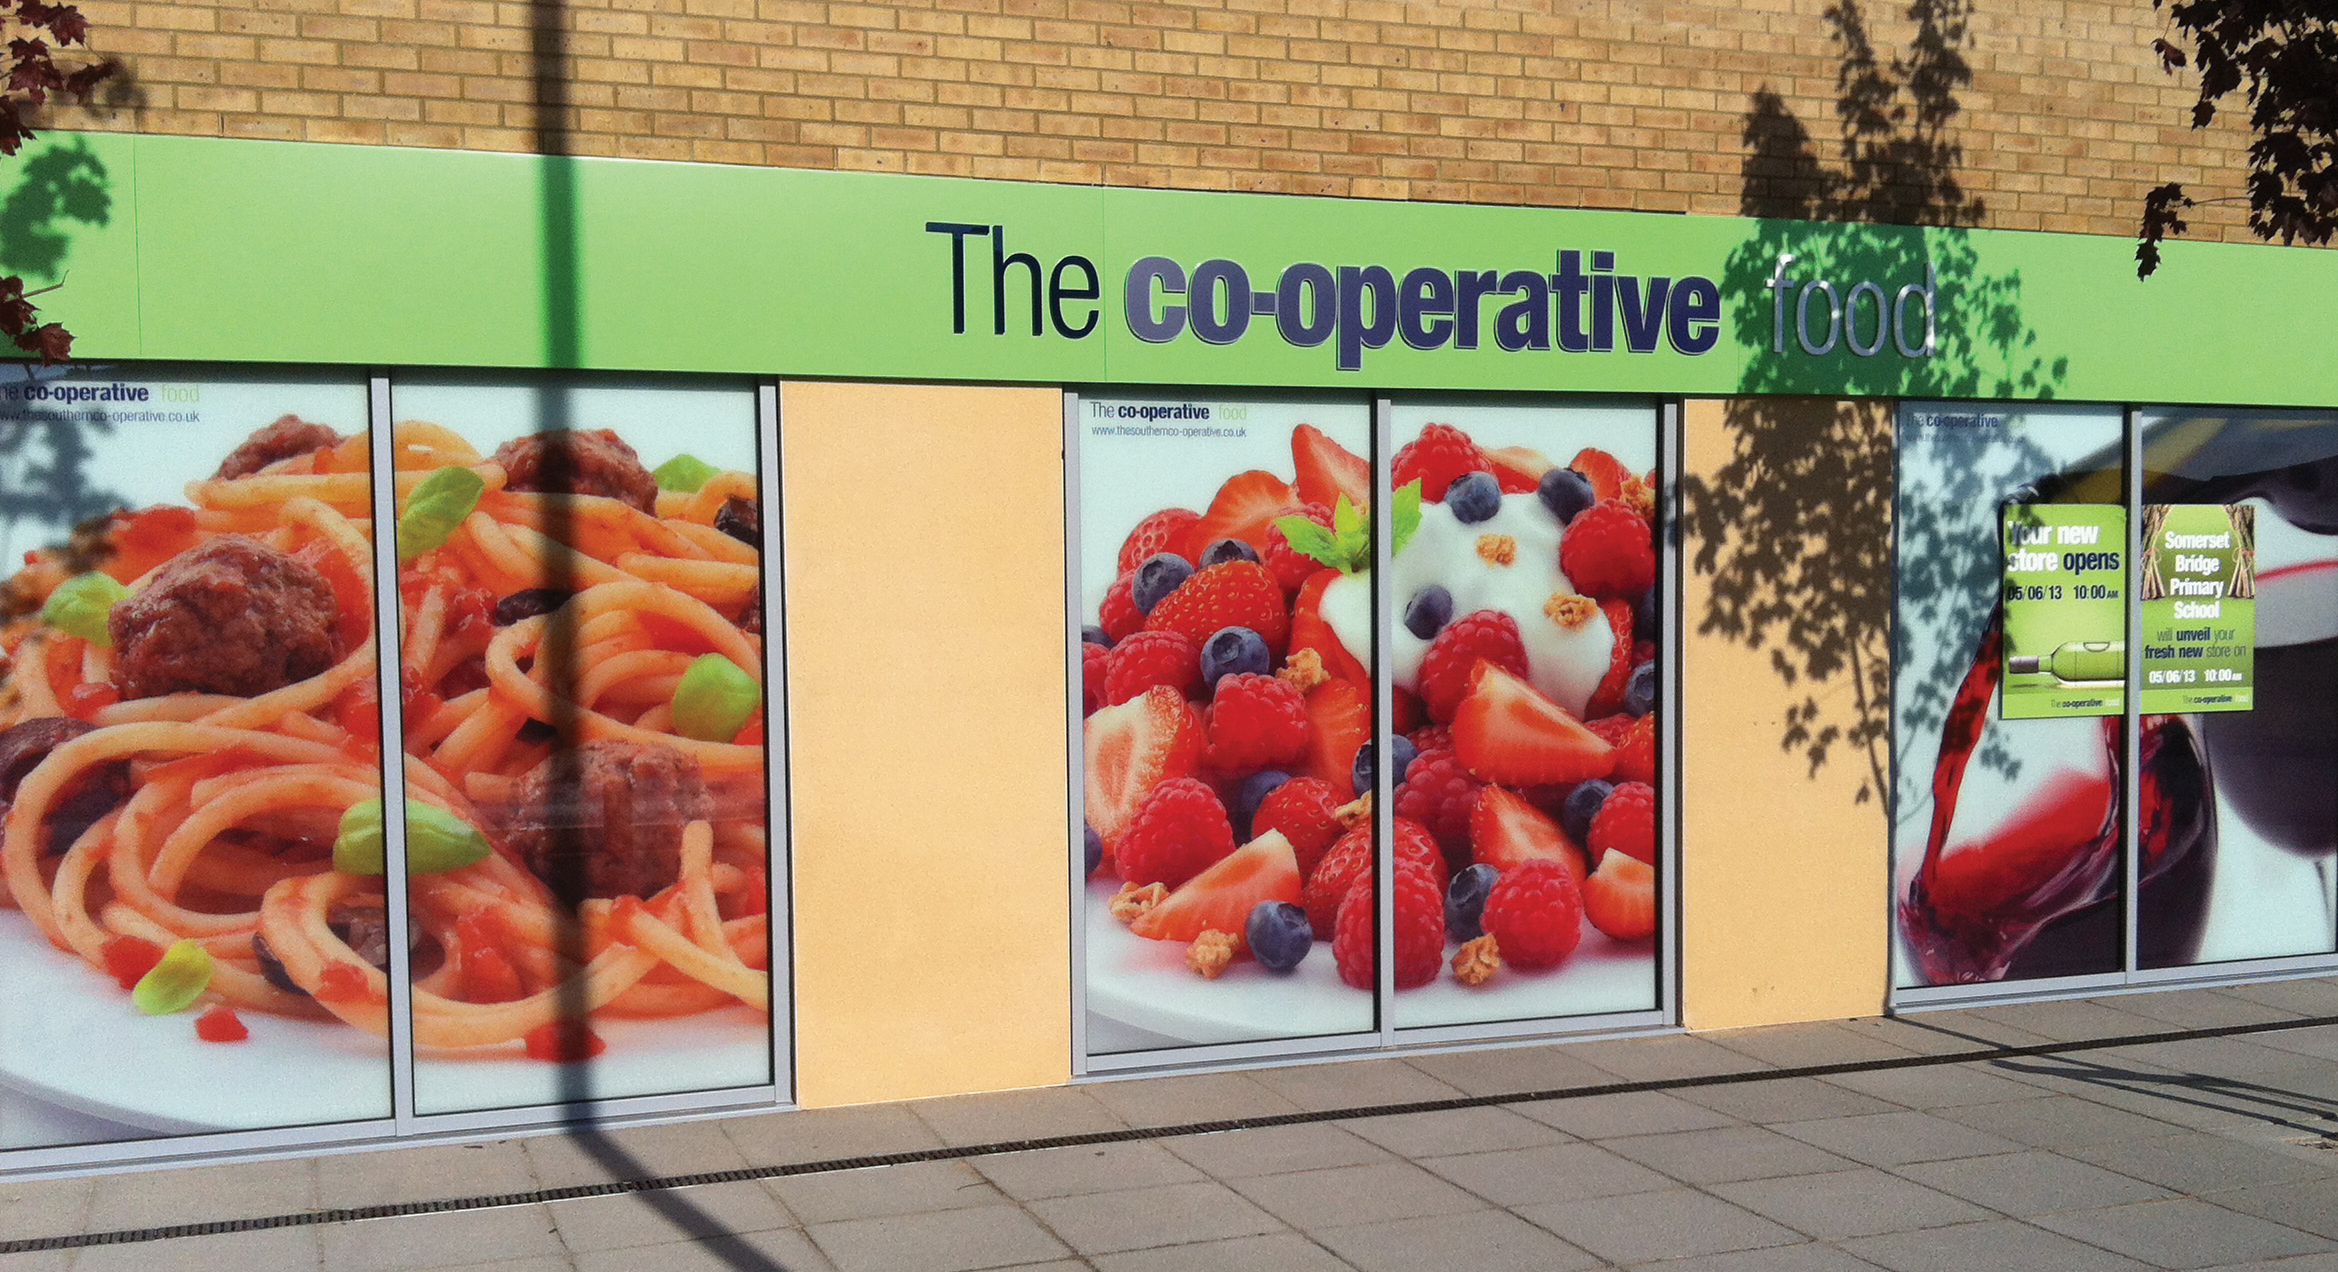 The co-operative food signage and window stickers